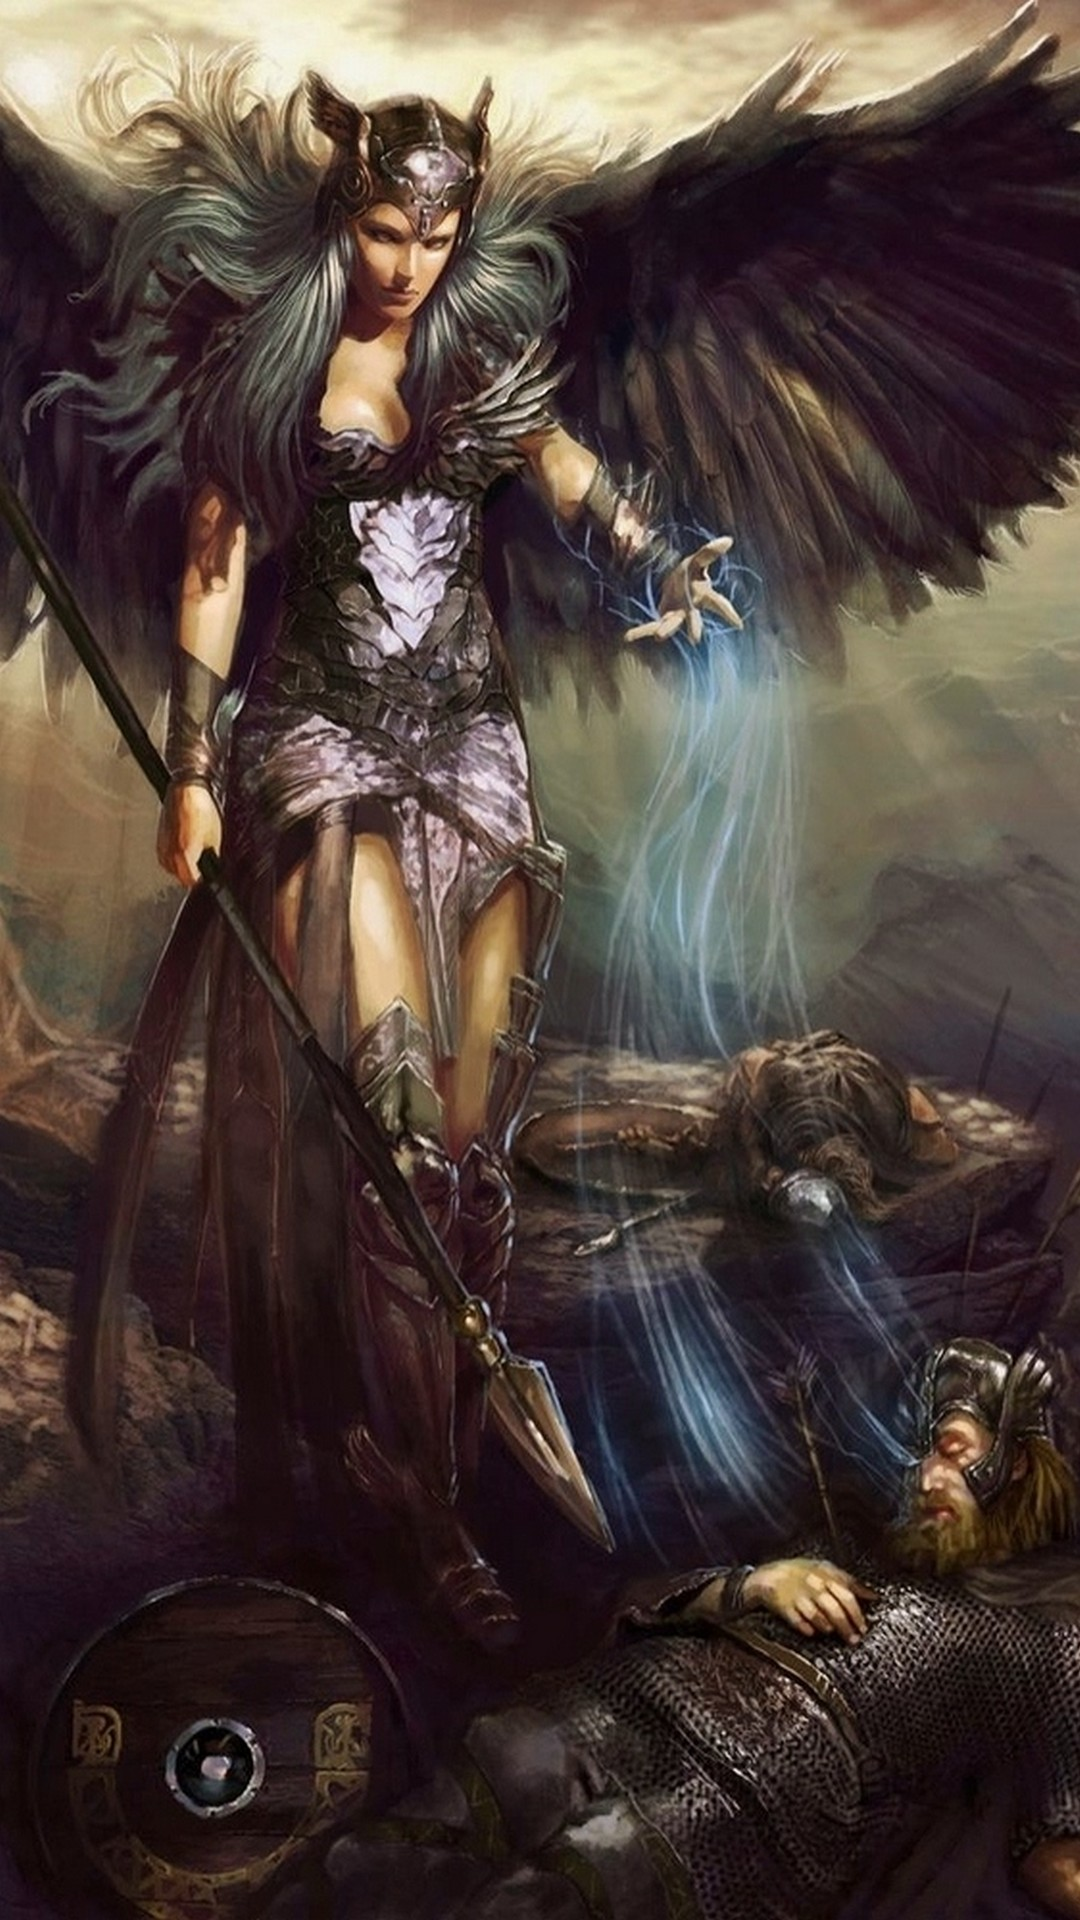 Beautiful 3d Wallpaper Iphone 6 Valkyrie Iphone Wallpaper 2018 Iphone Wallpapers